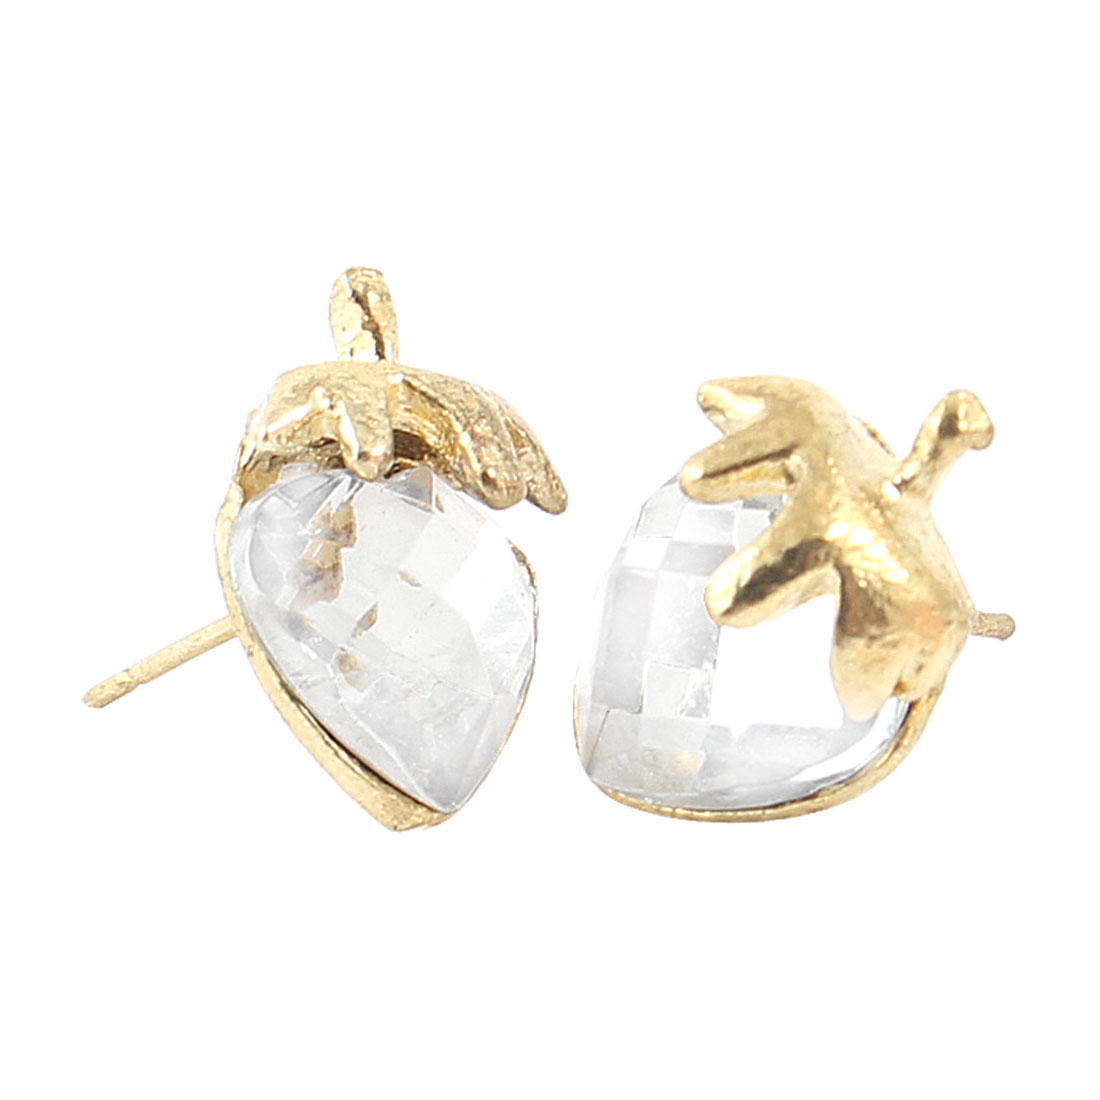 Lady White Plastic Crystal Strawberry Shape Pierced Stud Earrings Pair